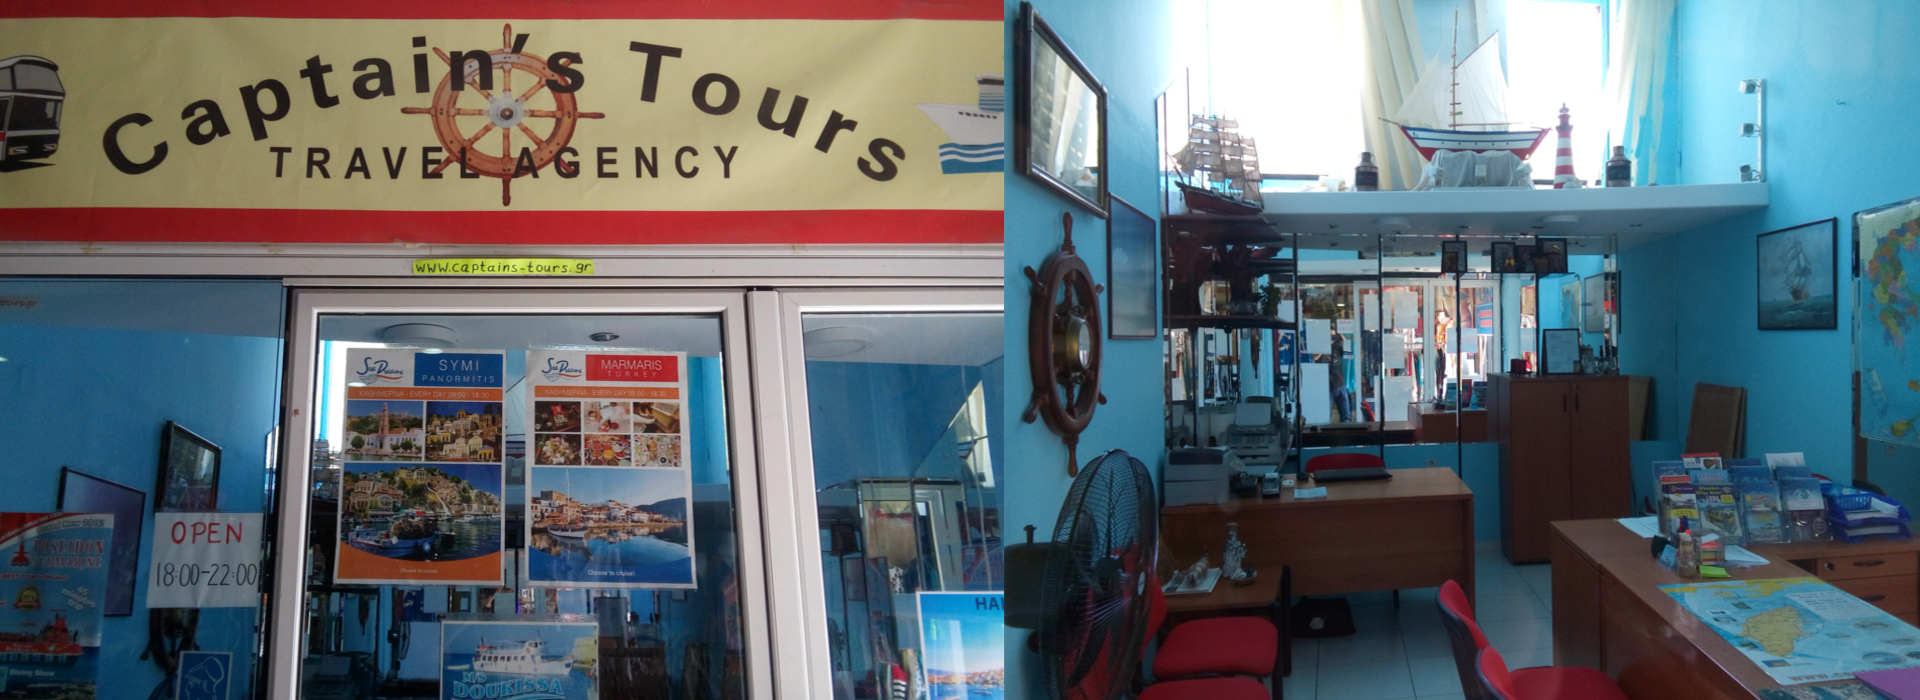 Captain's Tours Travel Agency | Over ons bedrijf